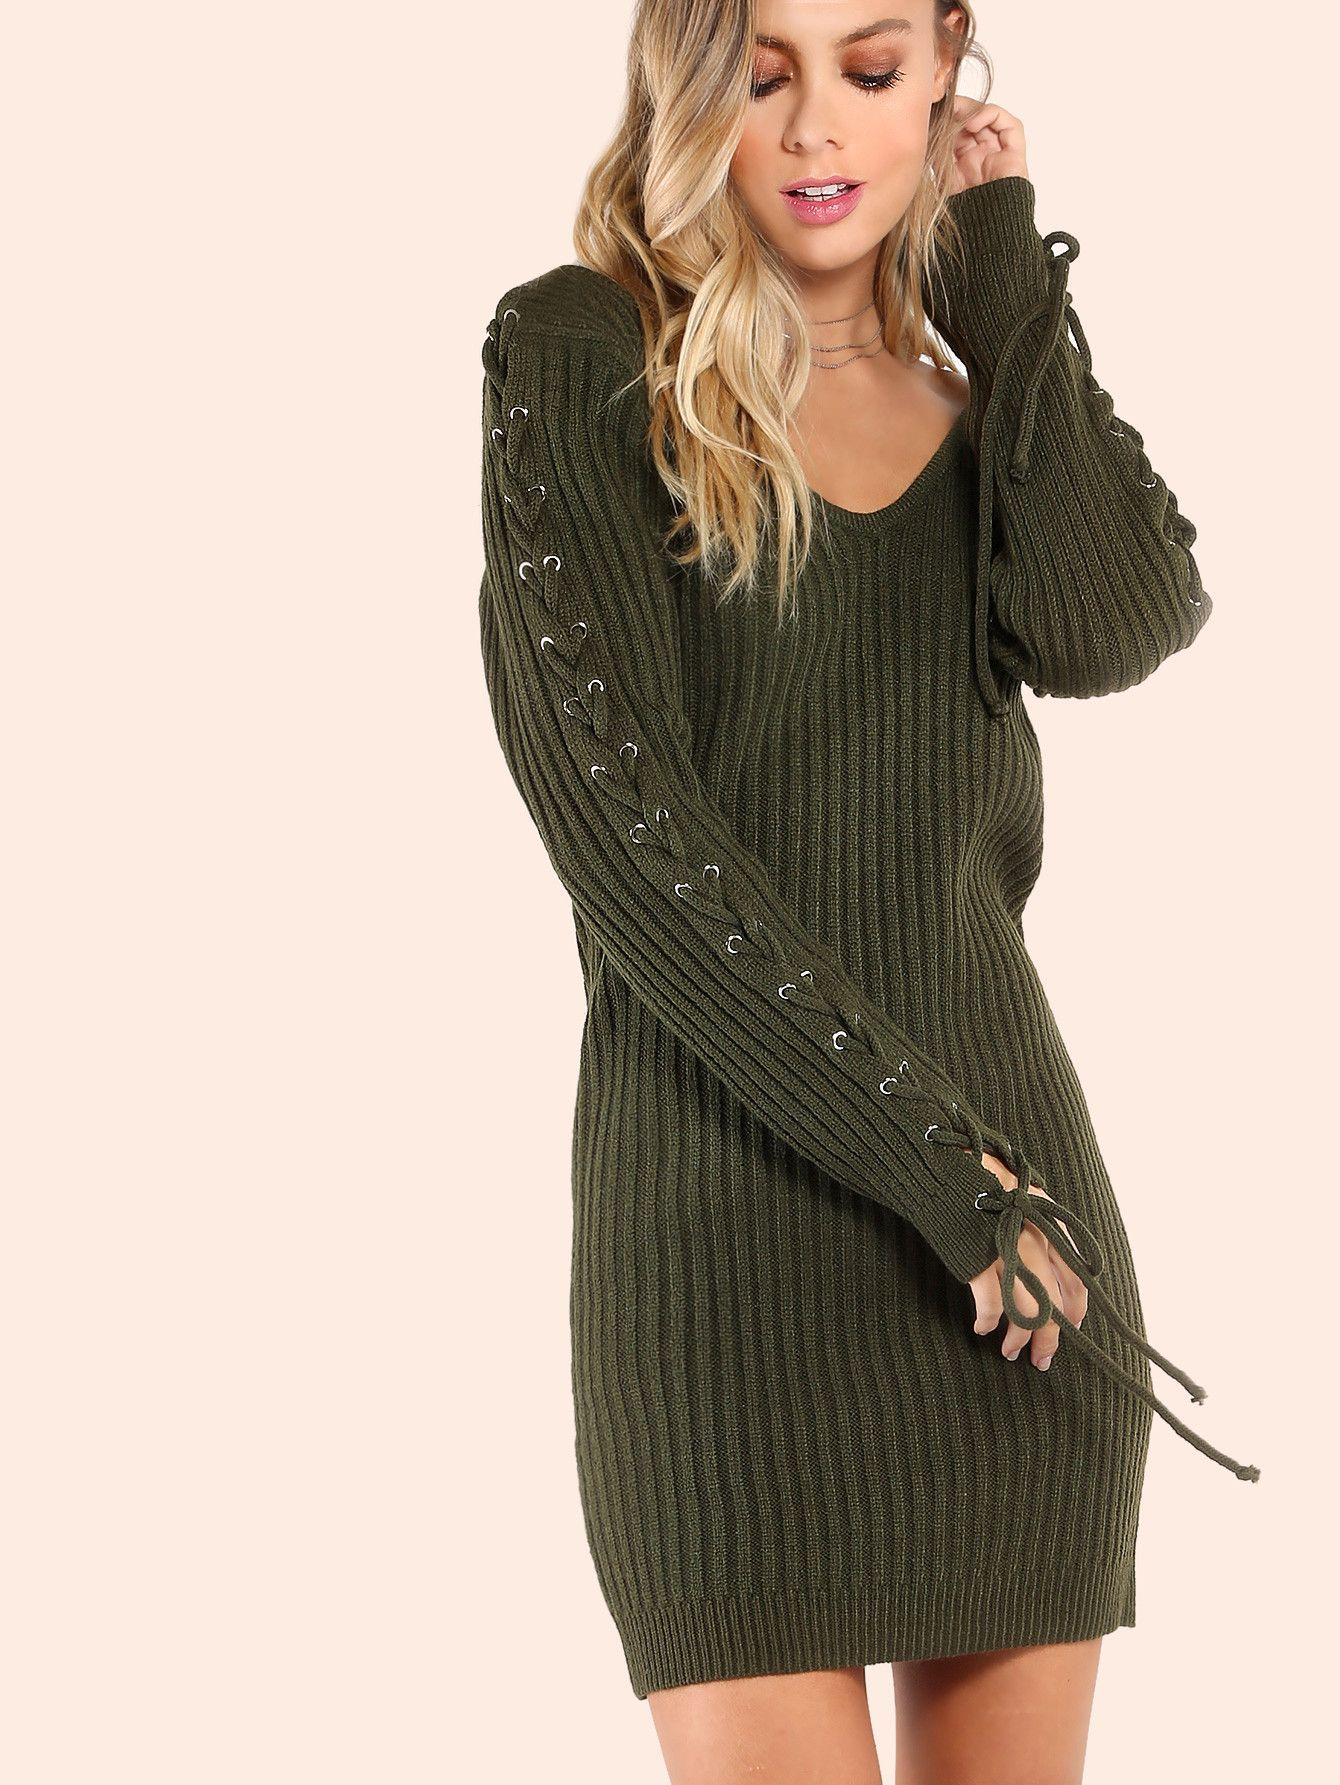 Fabric  Fabric has some stretch Season  Fall Type  Sweater Pattern Type   Plain Sleeve Length  Long Sleeve Color  Green Dresses Length  Mini Style   Casual 56c473c0b